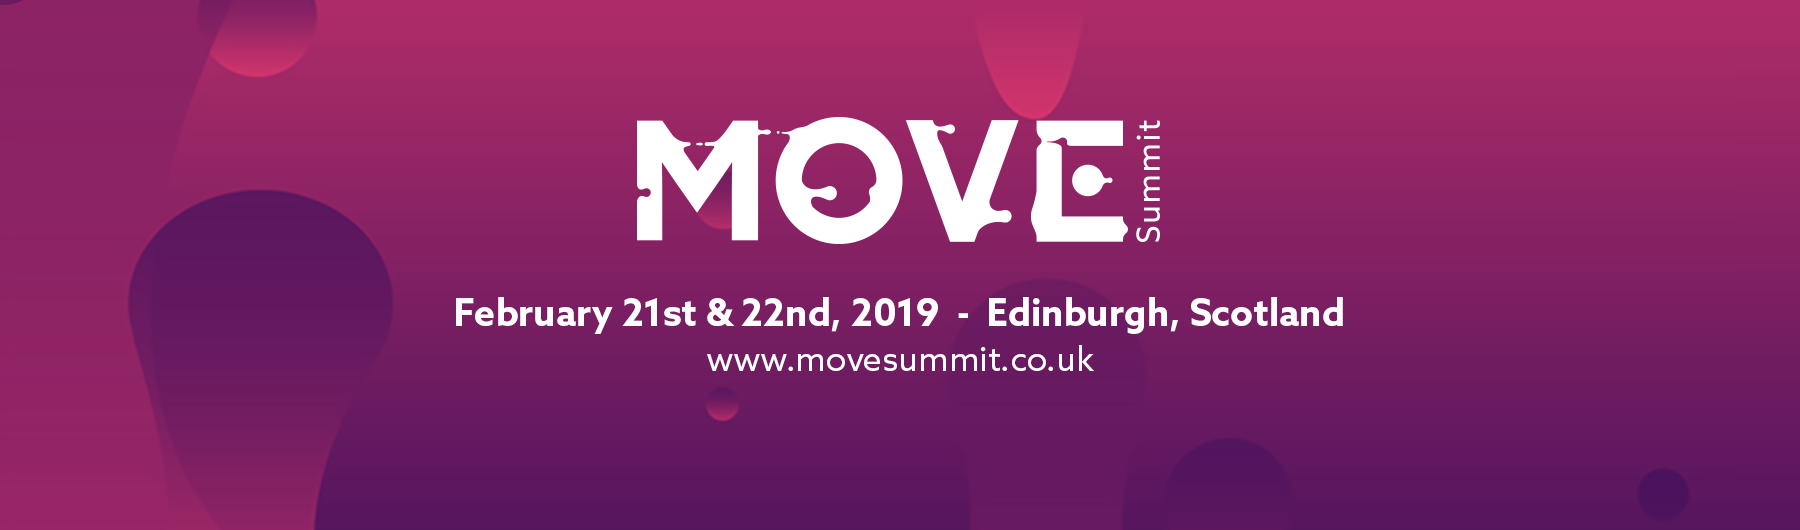 Move Summit 2019